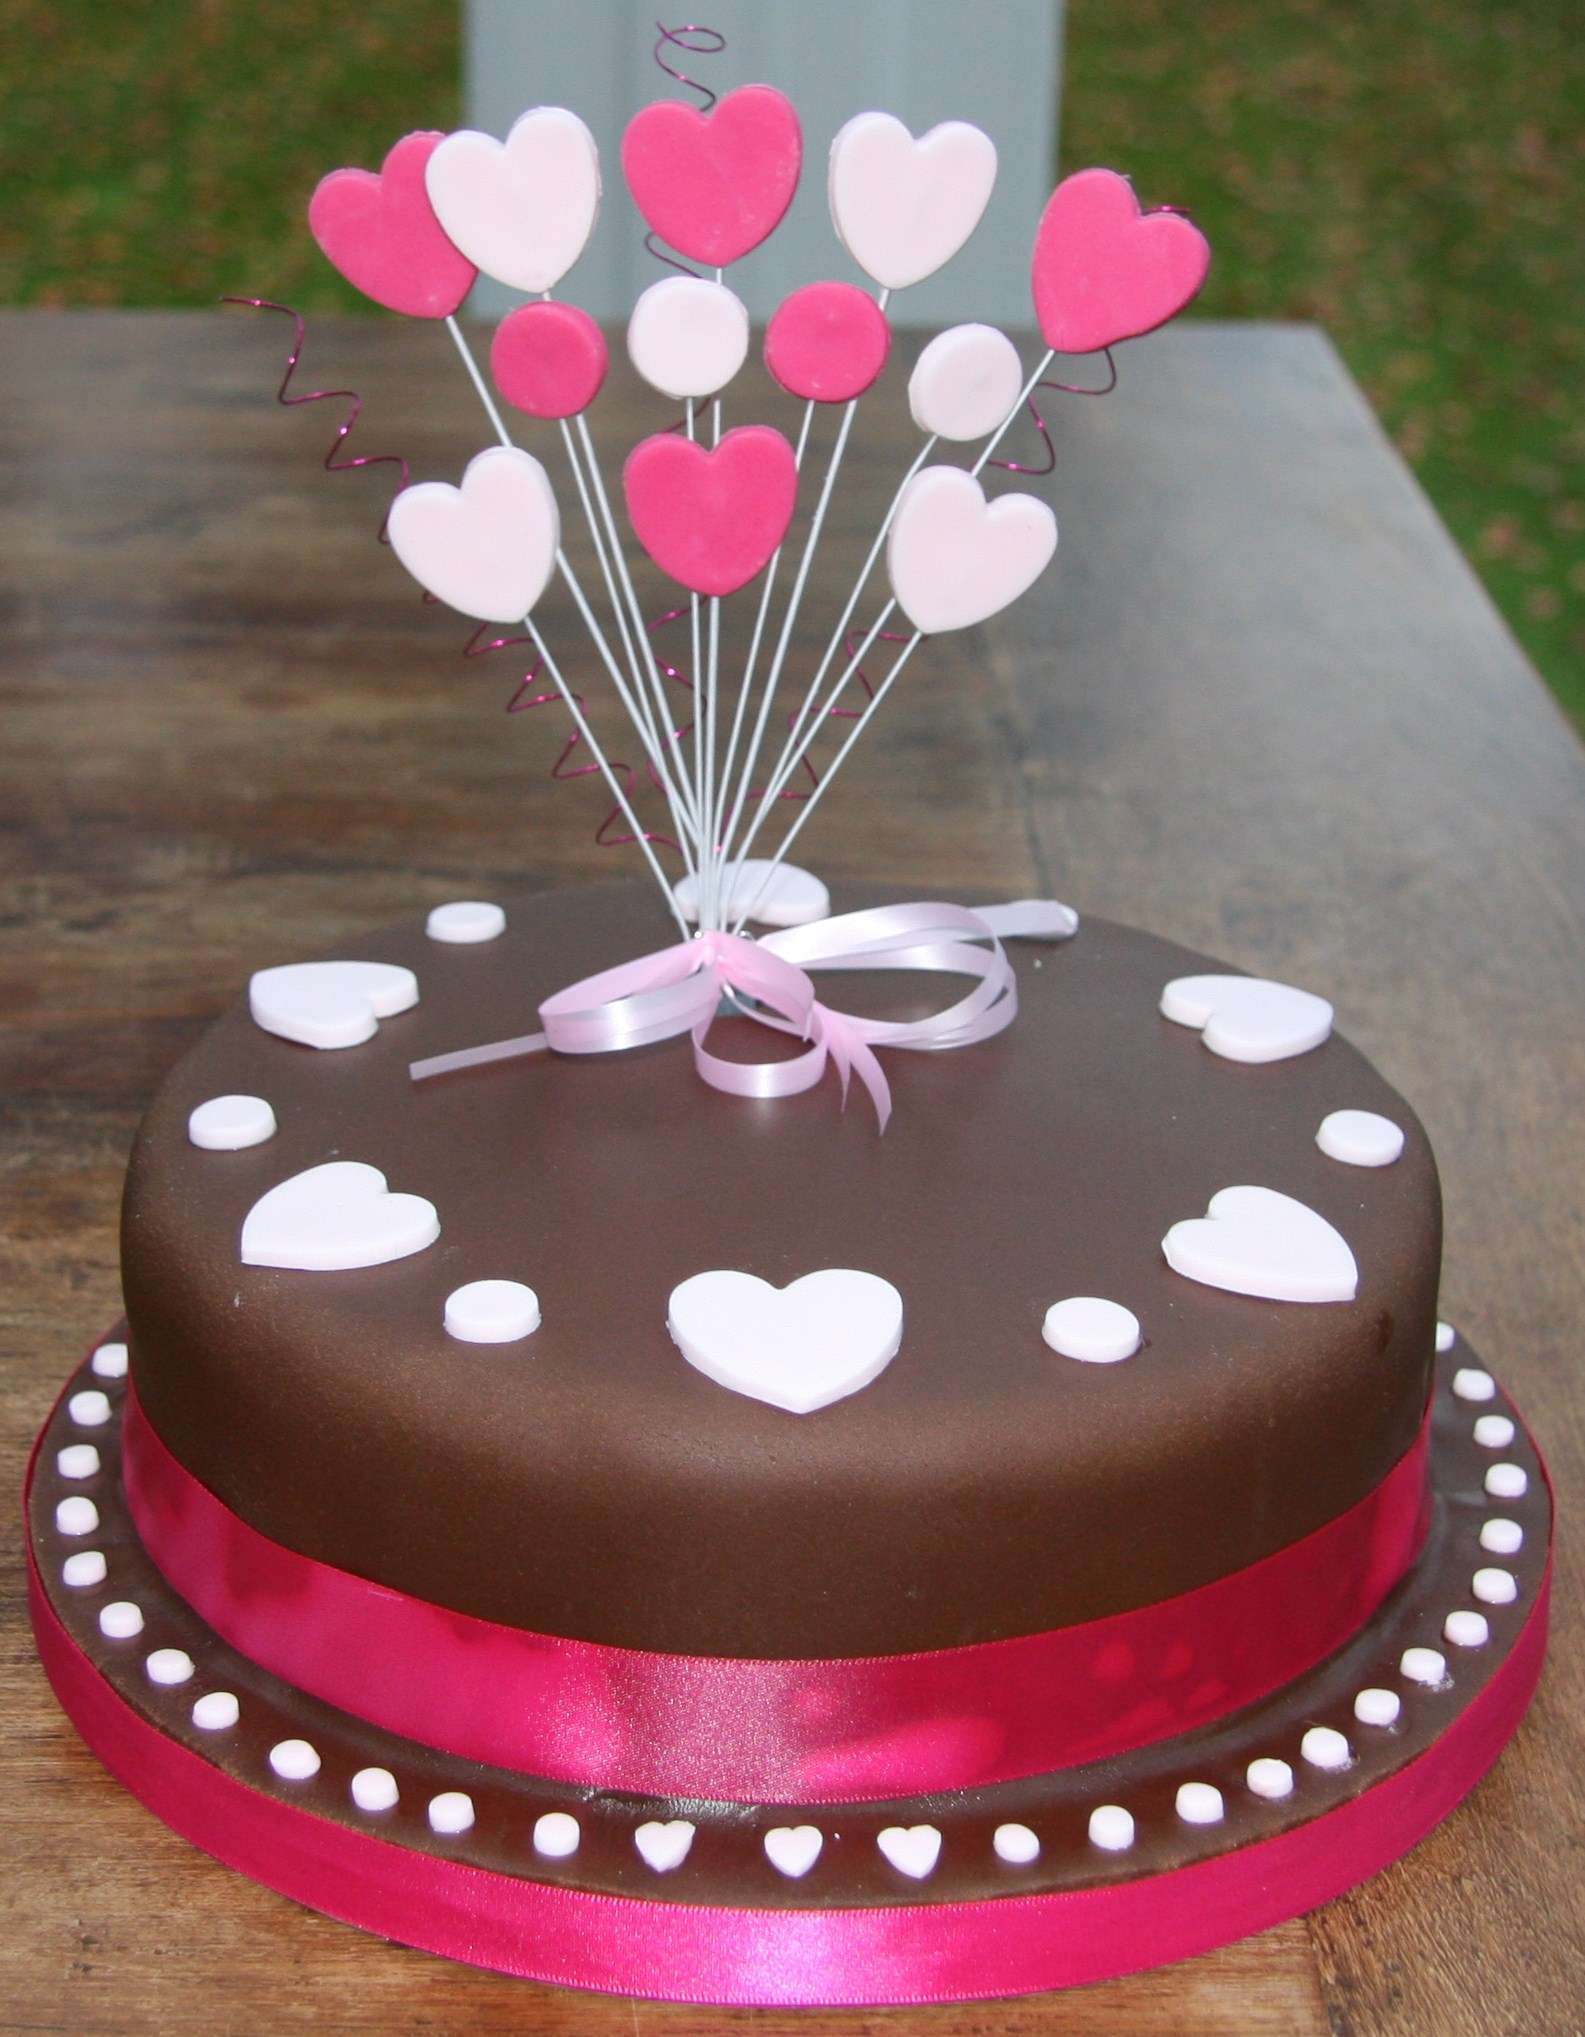 Cake Designs Hearts : Chocolate Birthday Cake with Hearts   lovinghomemade